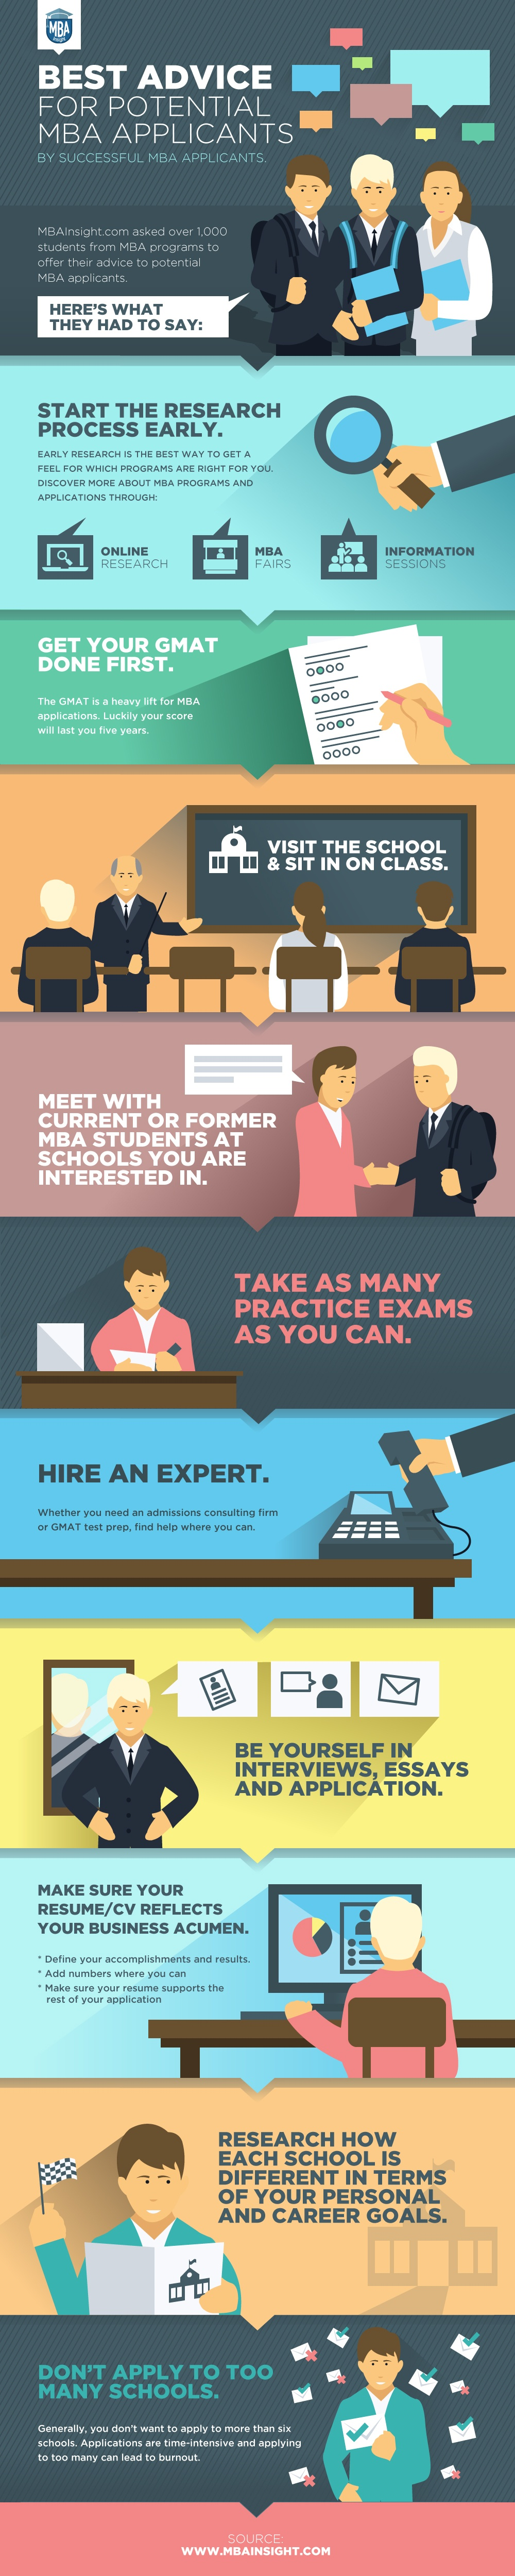 Best Advice for MBA Applicants Infographic